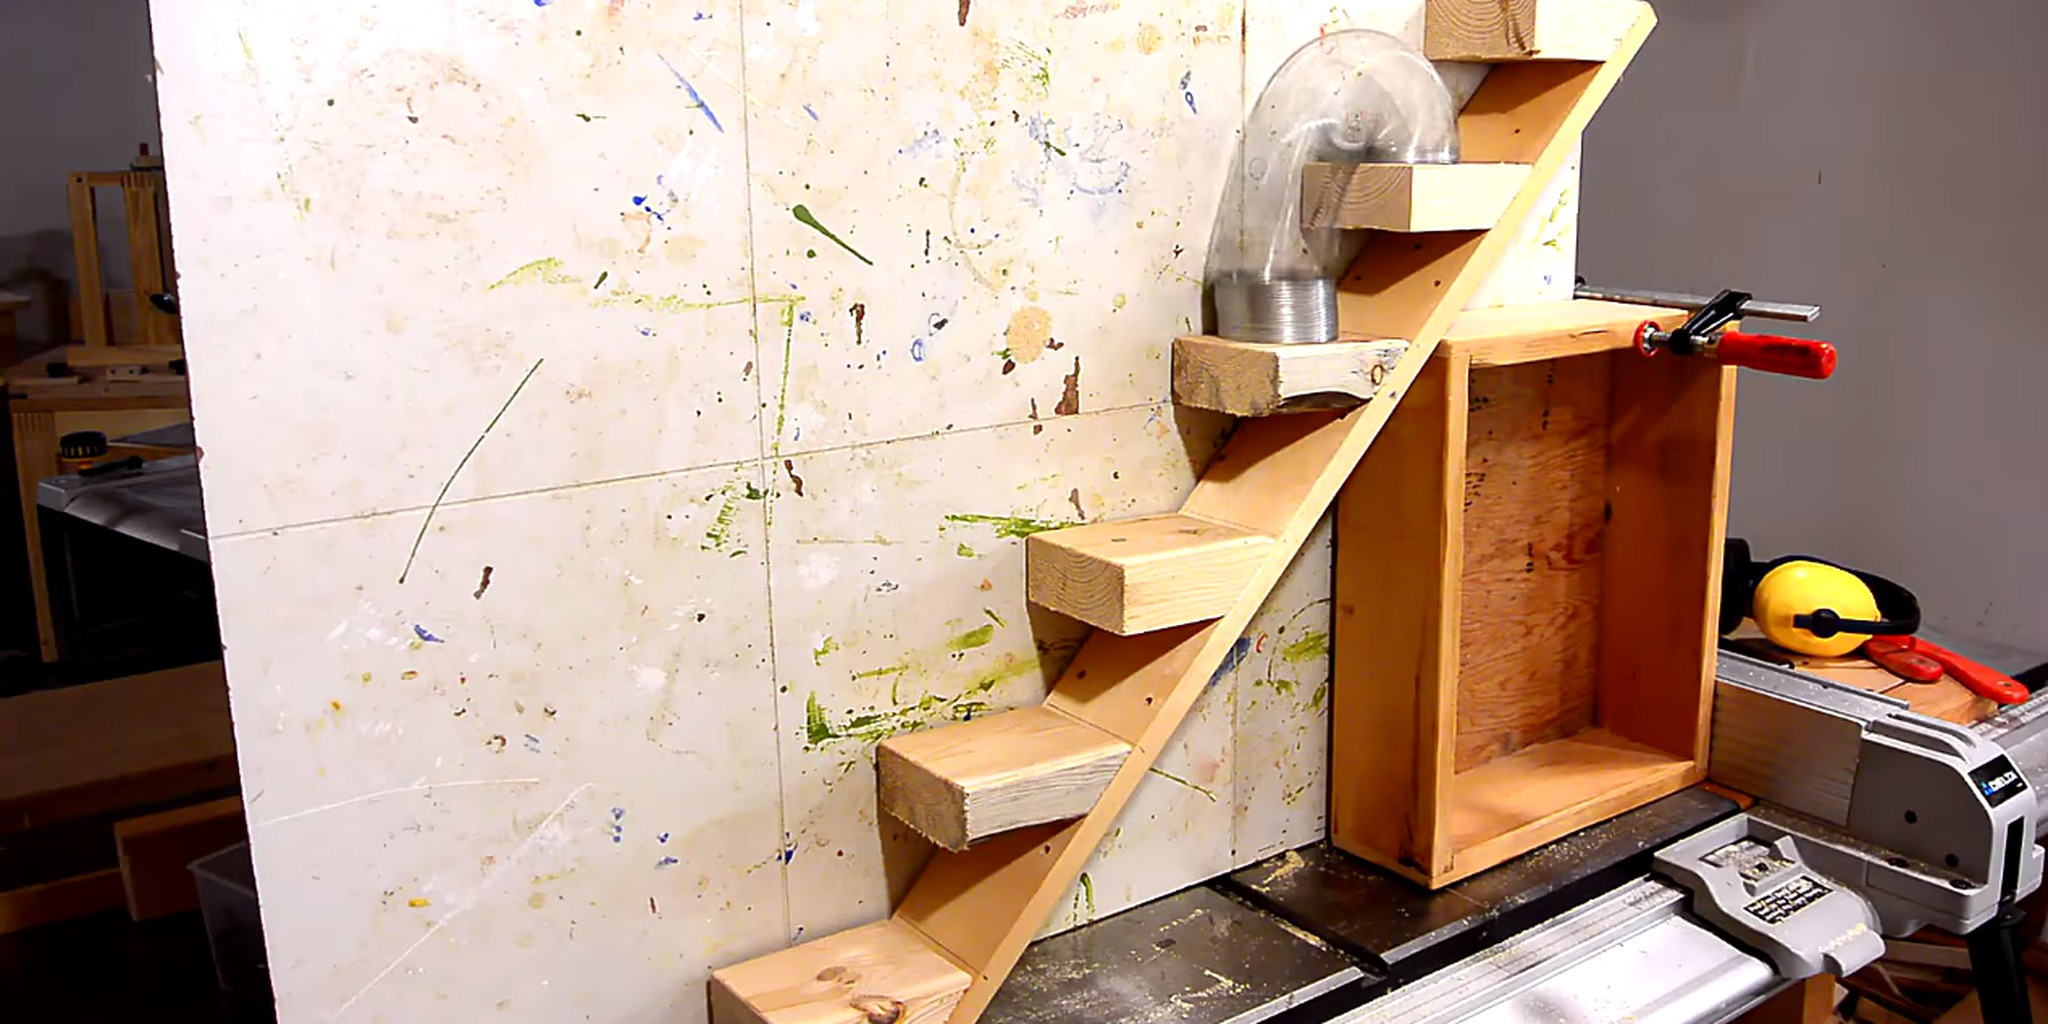 Homemade Slinky Staircase Is The Pinnacle Of Human